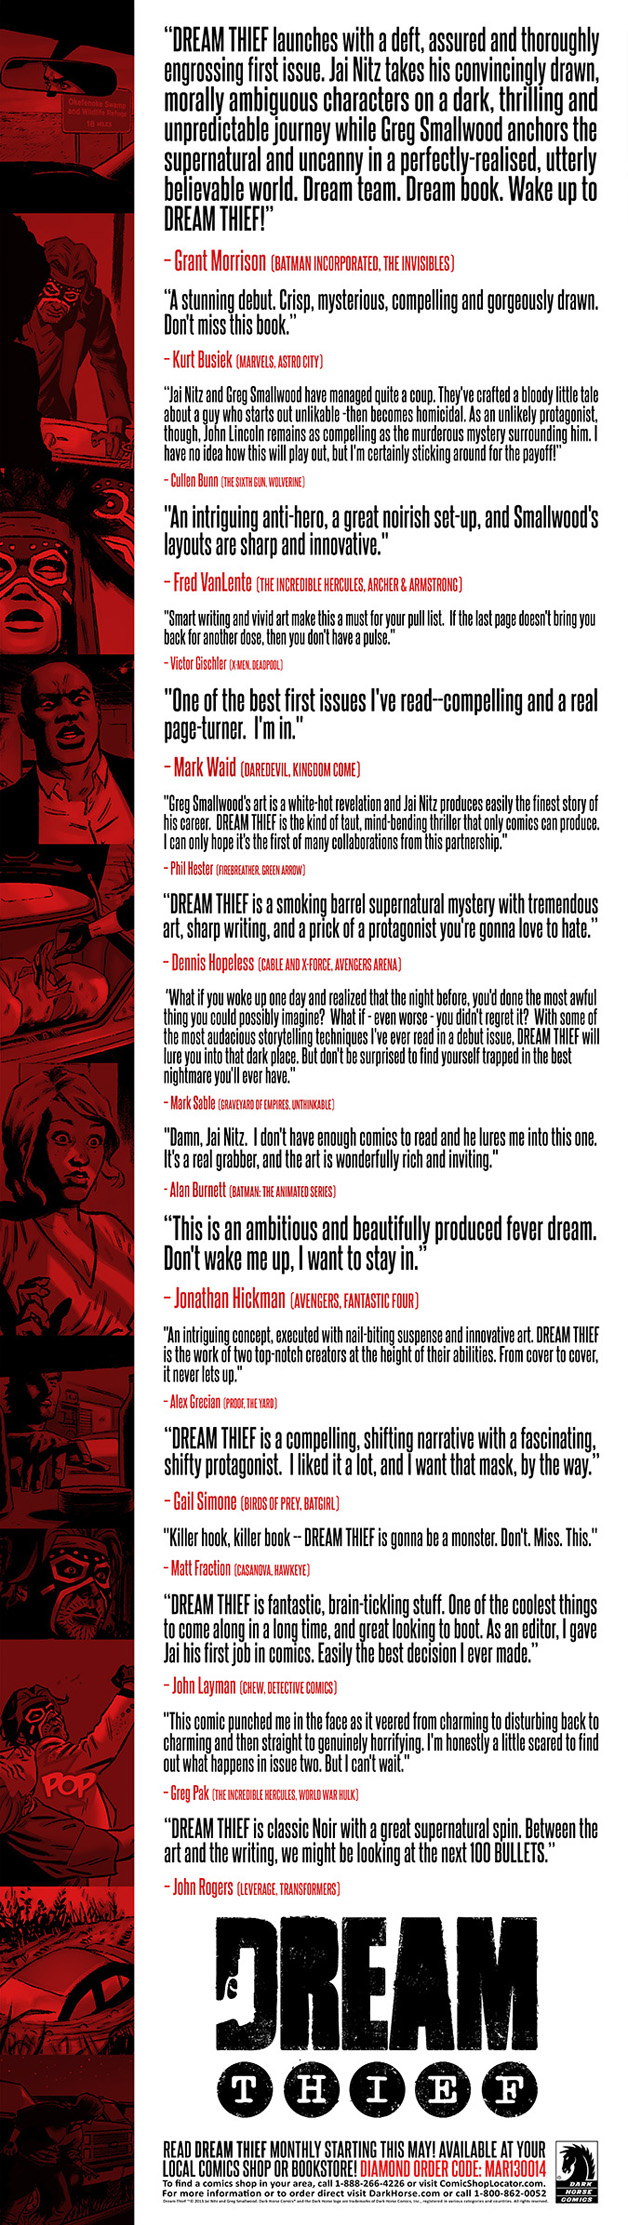 Kurt Busiek's quote #8